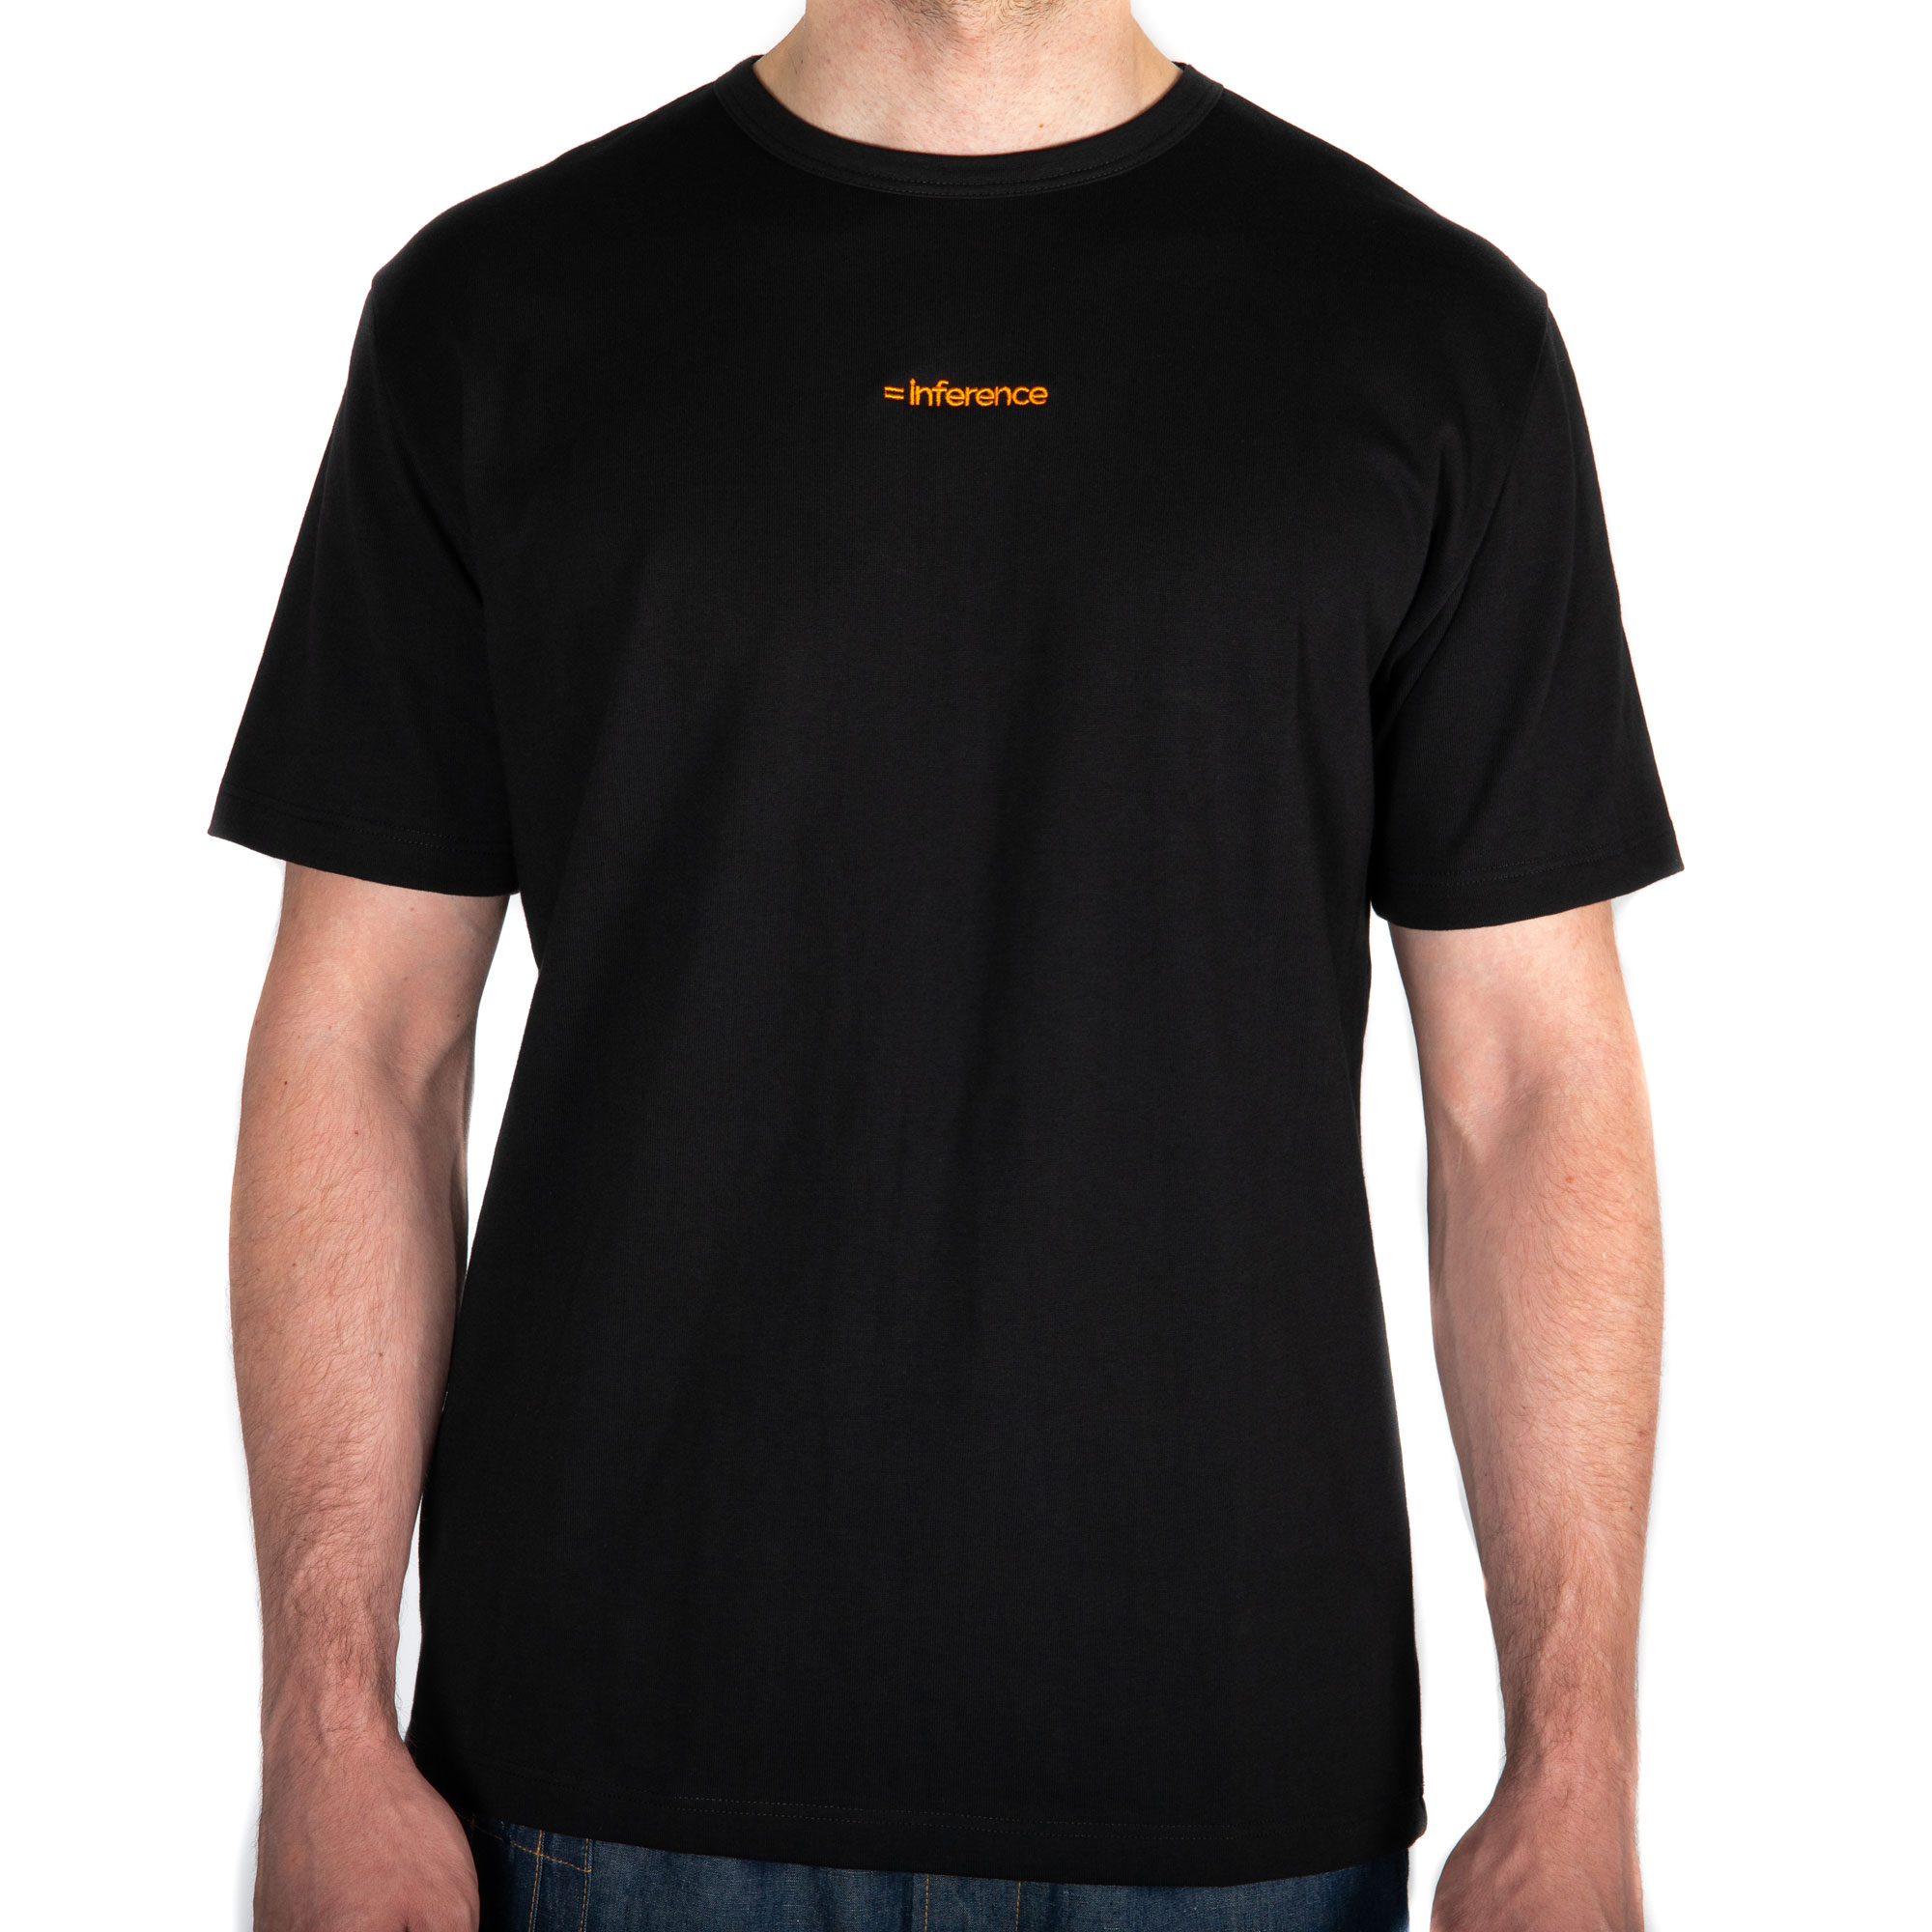 made in Germany tshirt